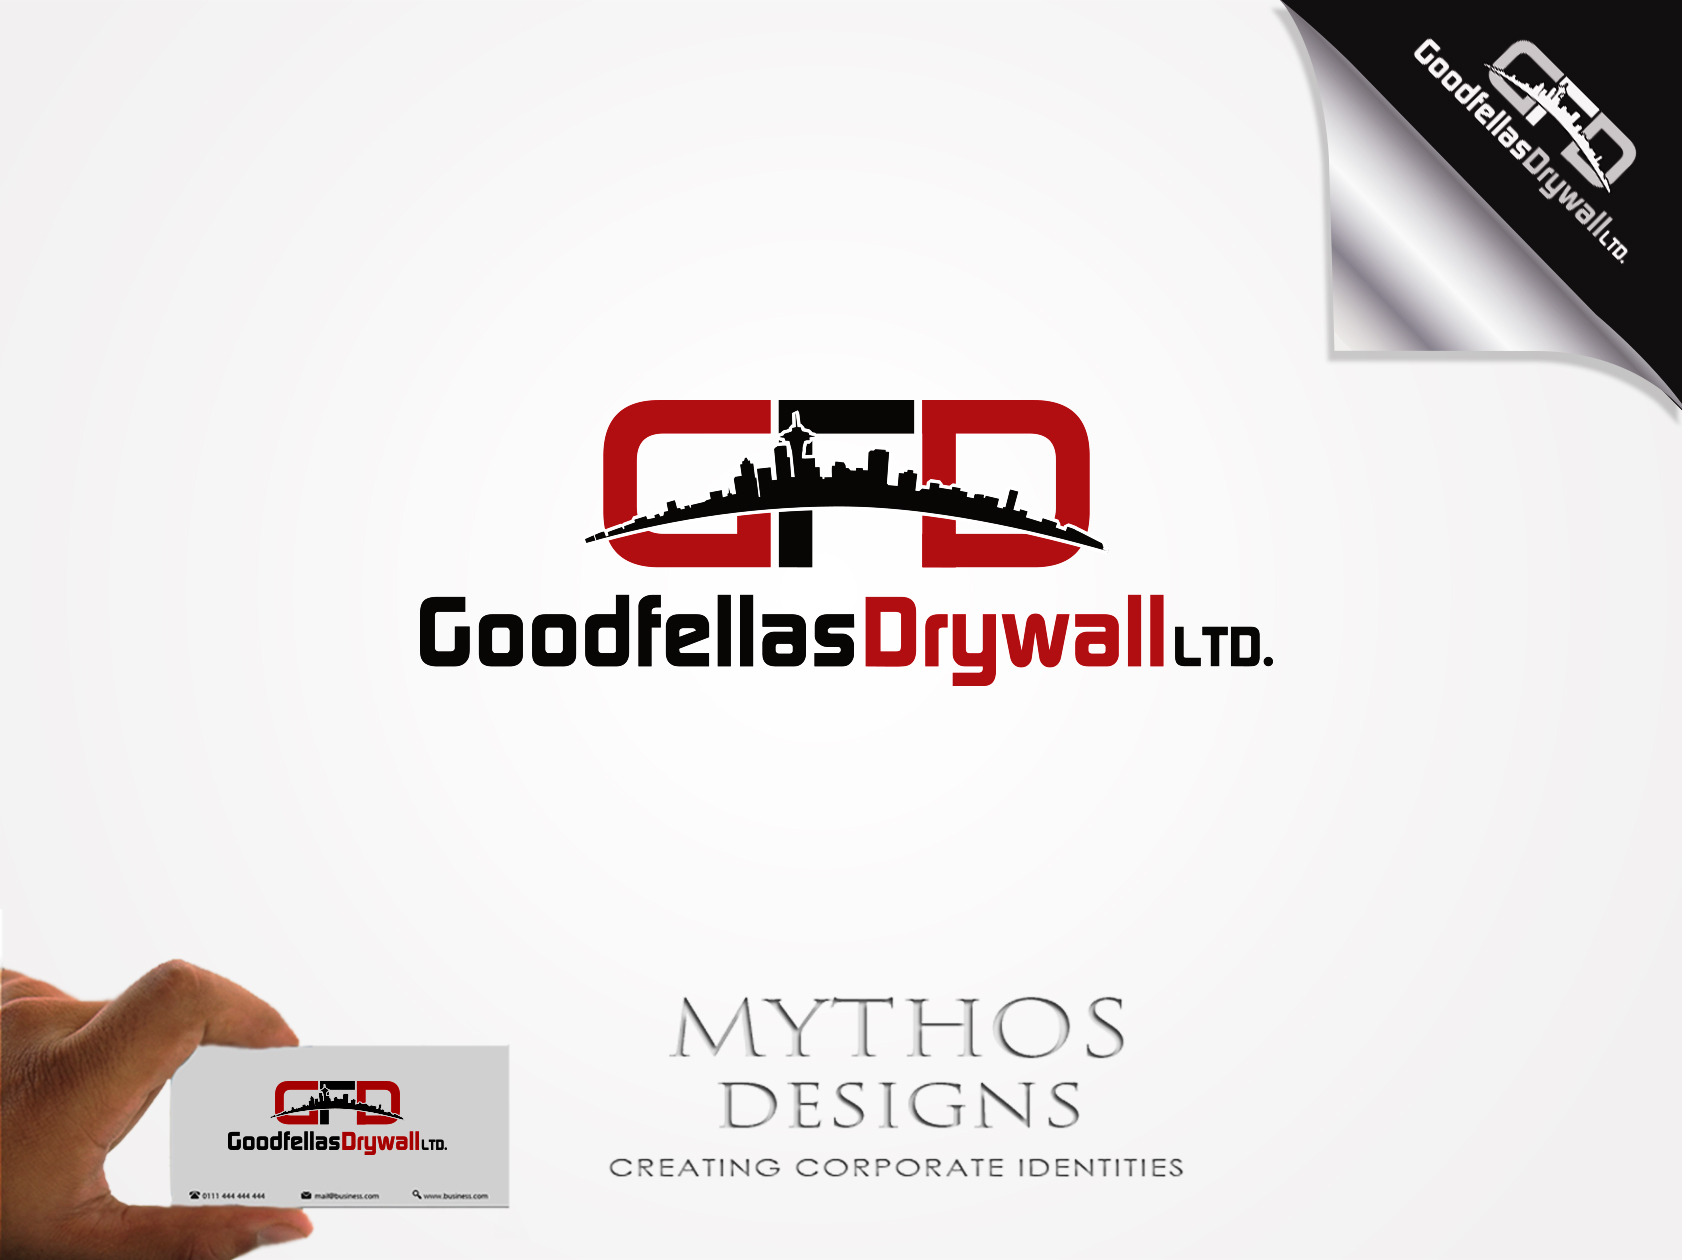 Logo Design by Mythos Designs - Entry No. 200 in the Logo Design Contest Creative Logo Design for Goodfellas Drywall.